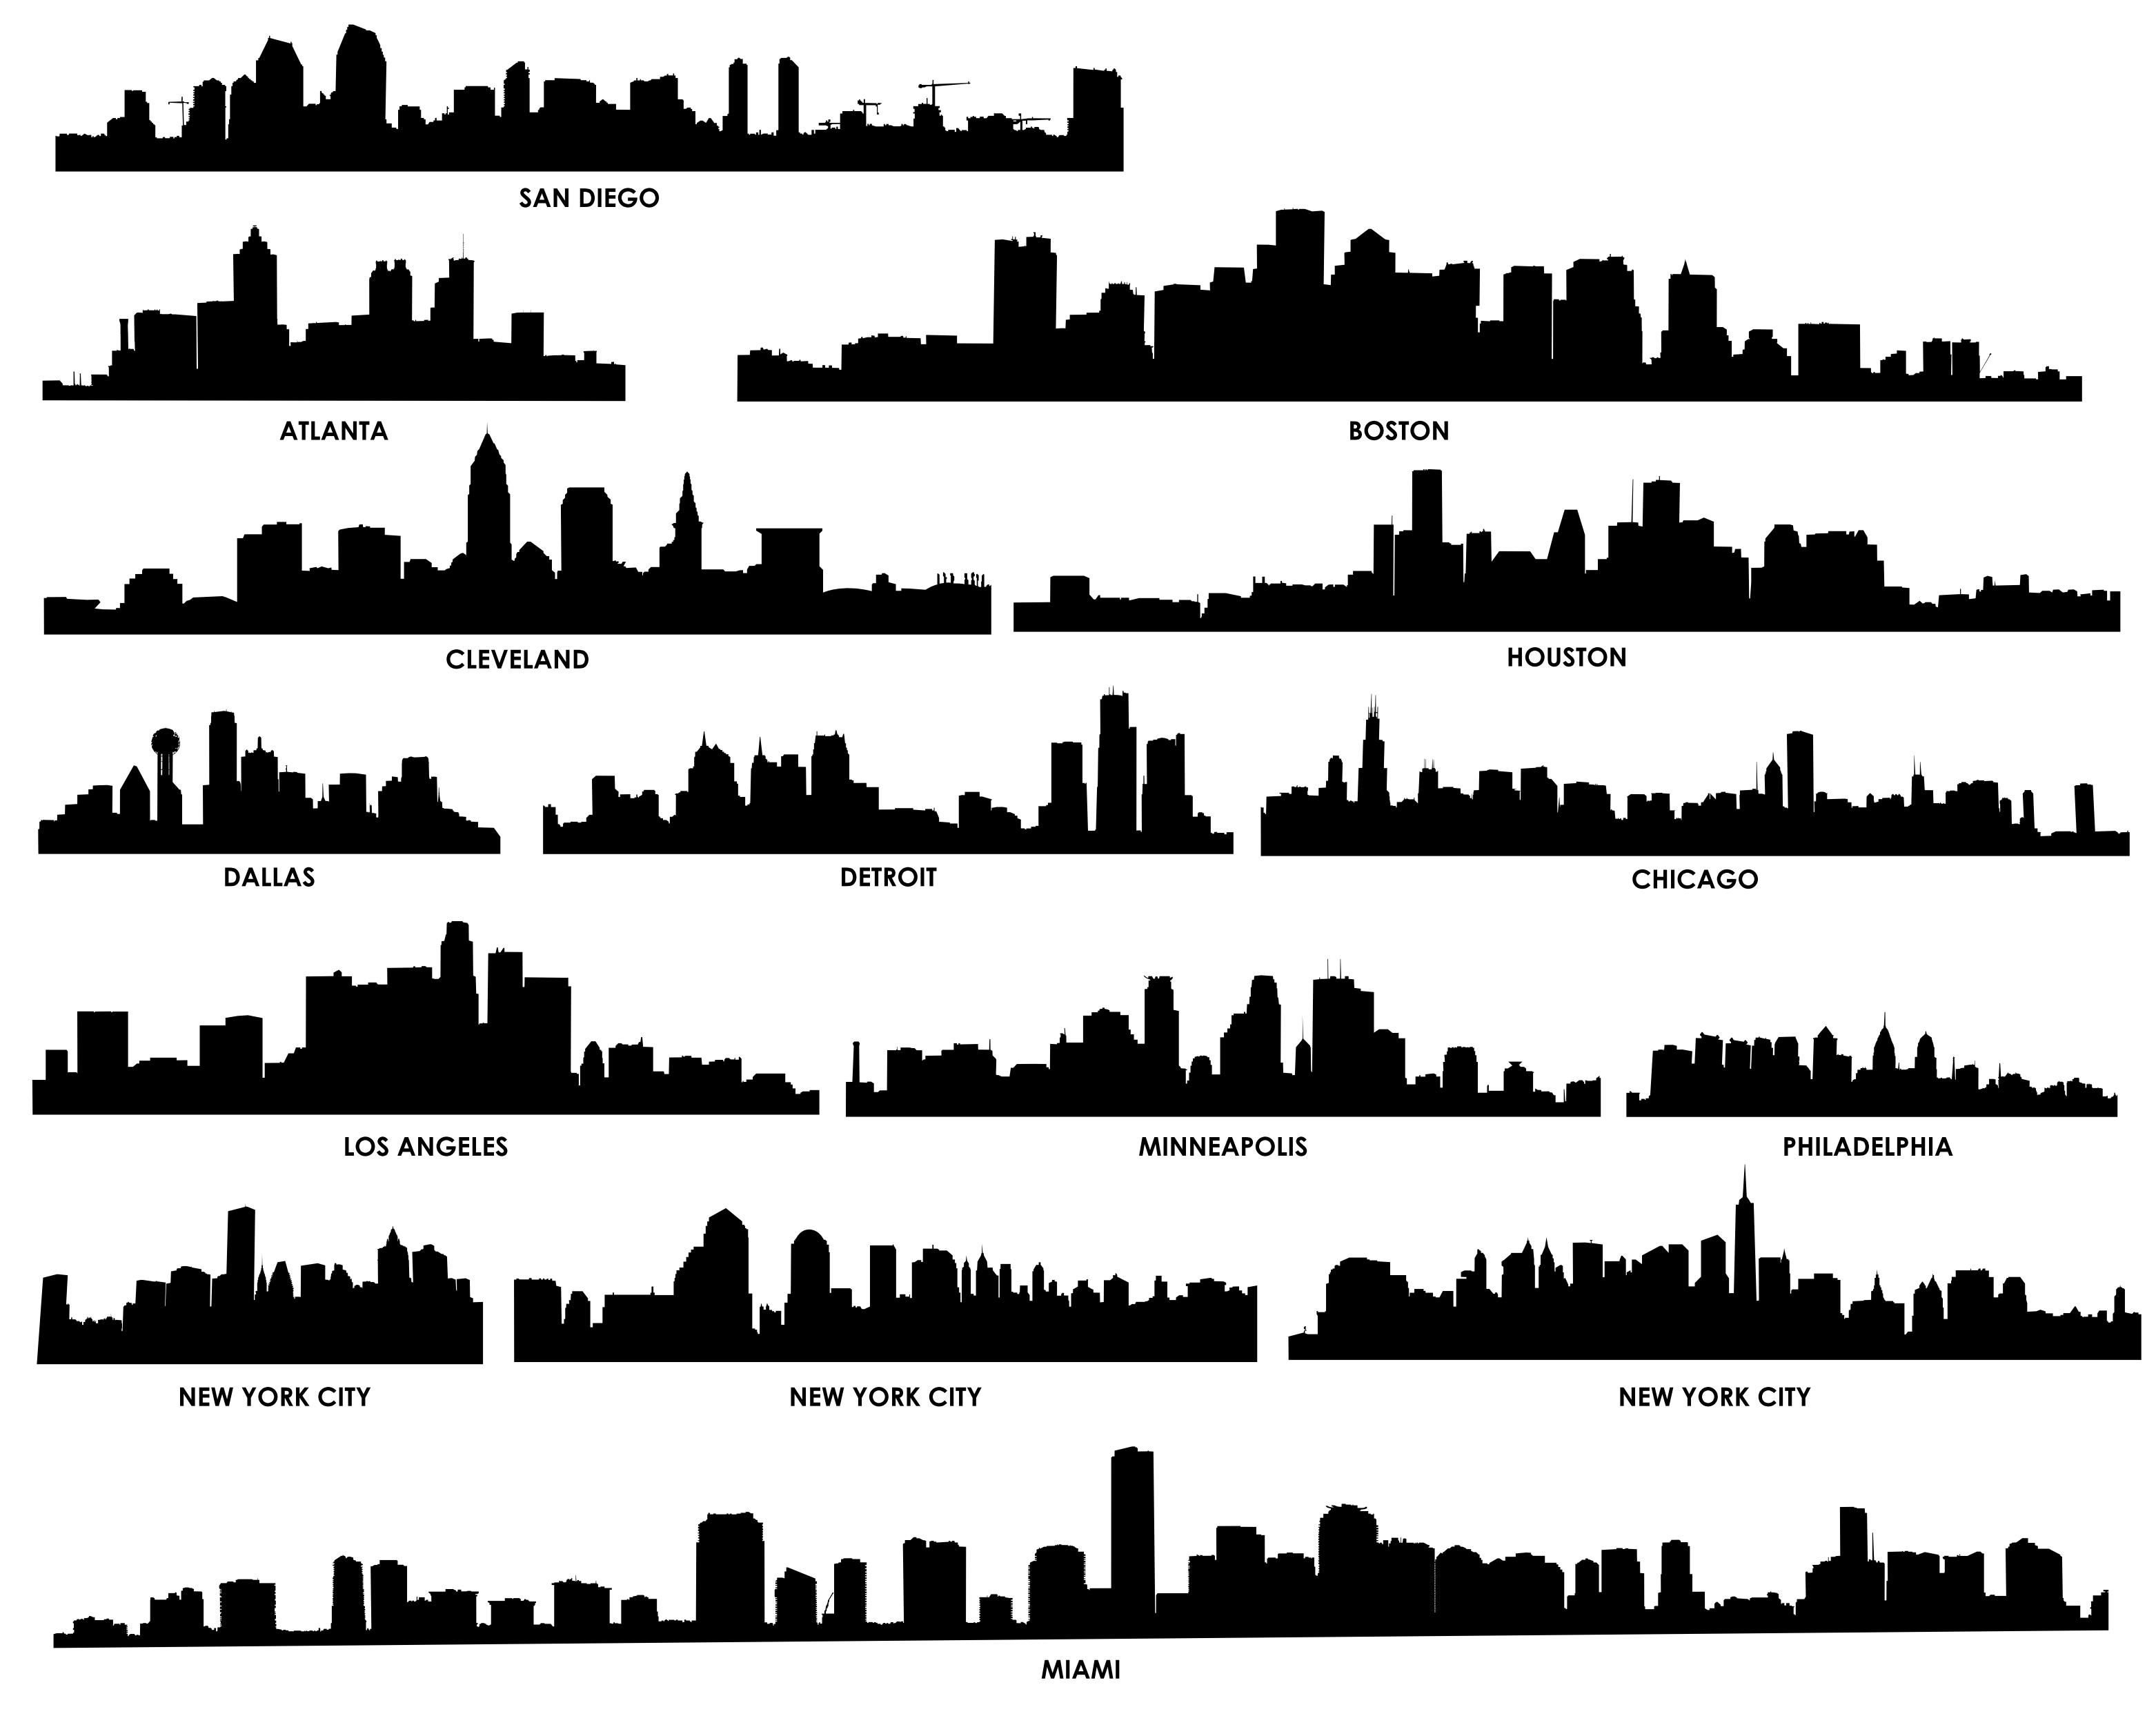 City Skyline Silhouette 02 Download Vector City Silhouette Building Silhouette Cityscape Silhouette